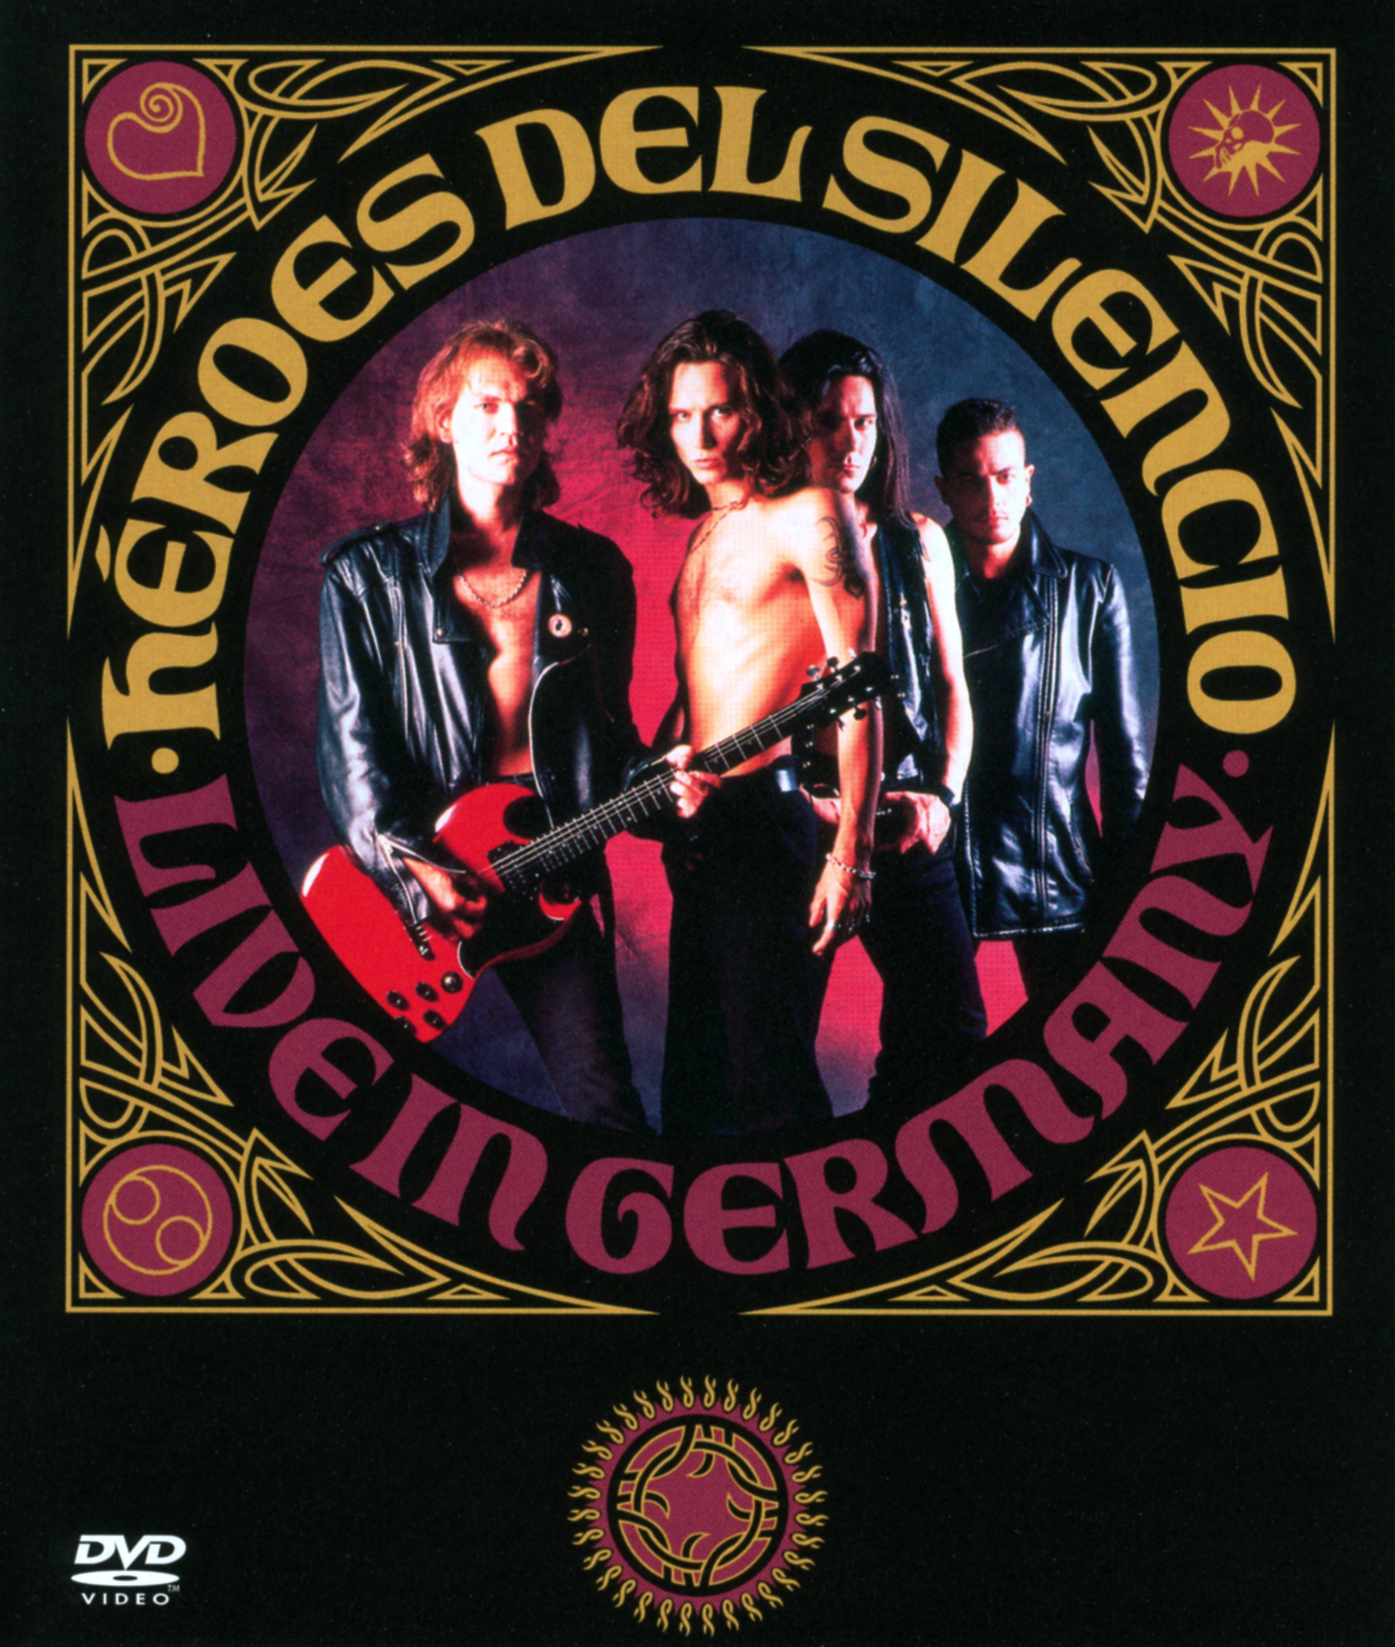 Heroes del Silencio: Live in Germany